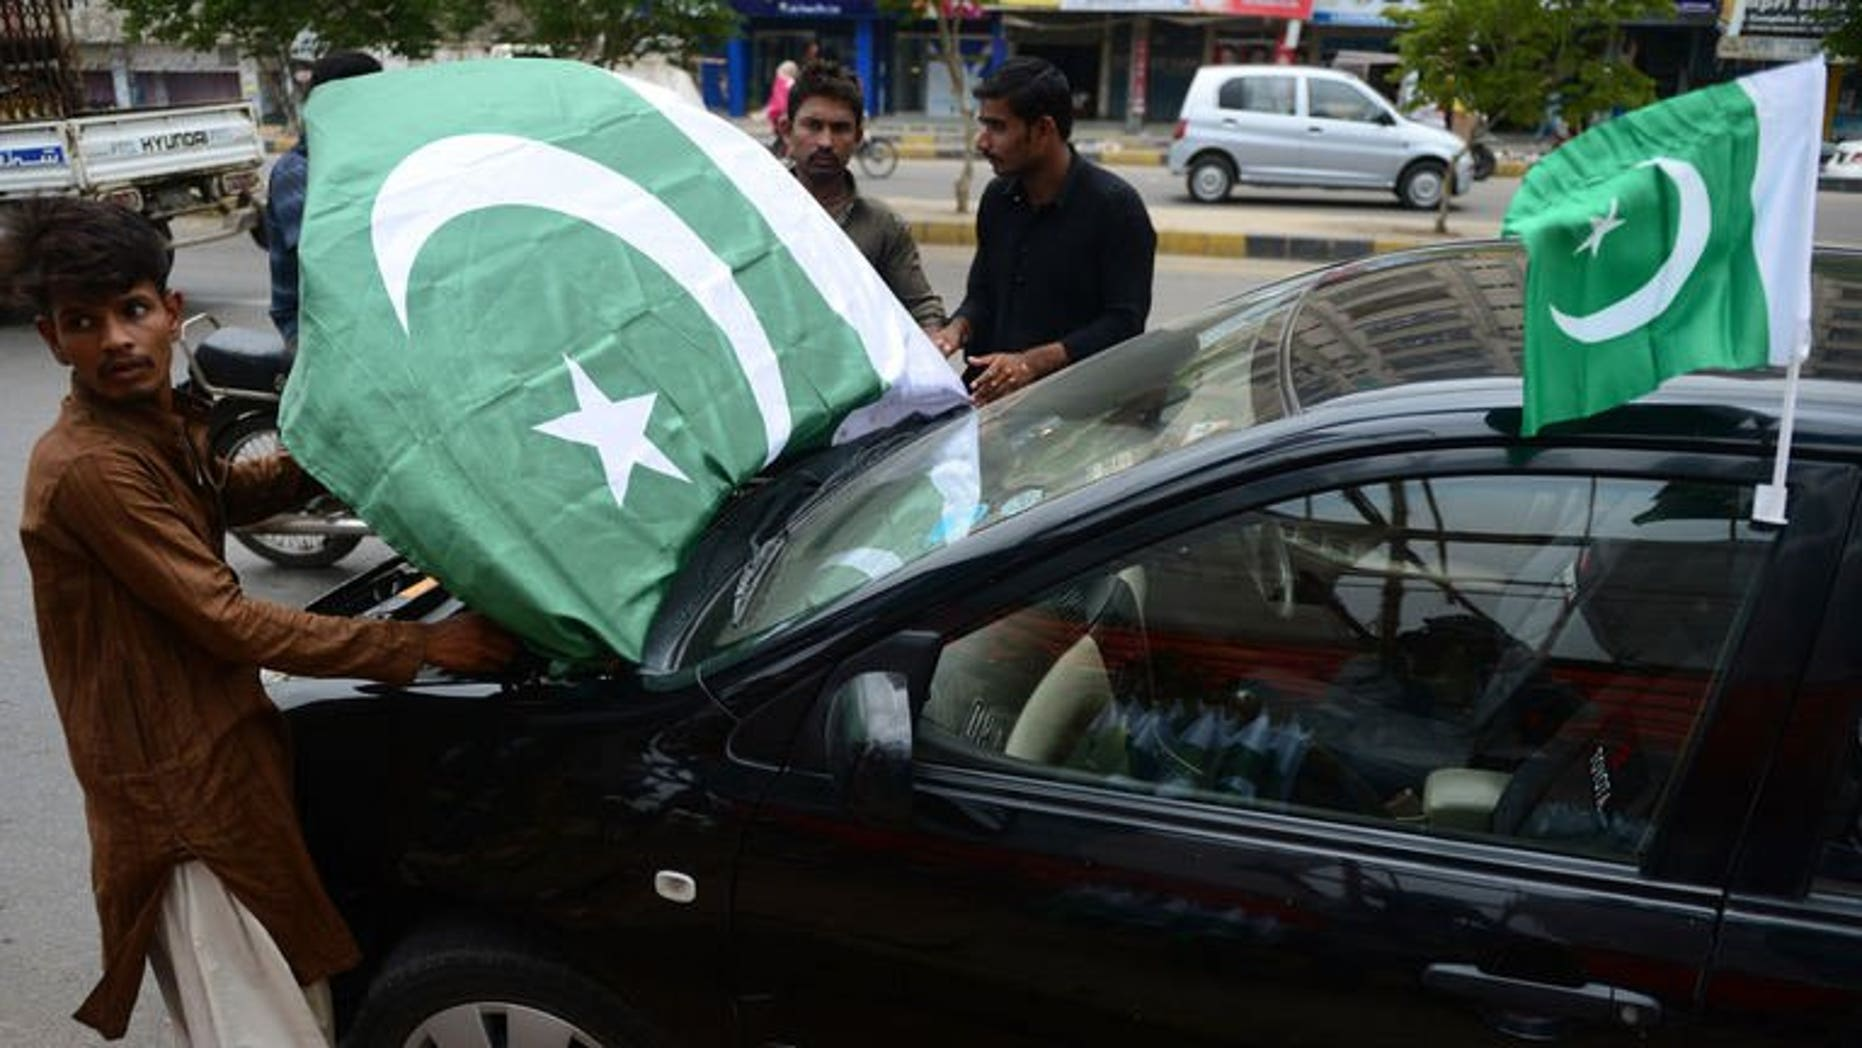 Pakistani vendors decorate a car with national flags ahead of the country's Independence Day in Karachi on August 12, 2013. Twin hand grenade attacks killed at least two people and wounded 28 others belonging to a Shiite Muslim community in Pakistan's port city of Karachi on Tuesday, officials said.